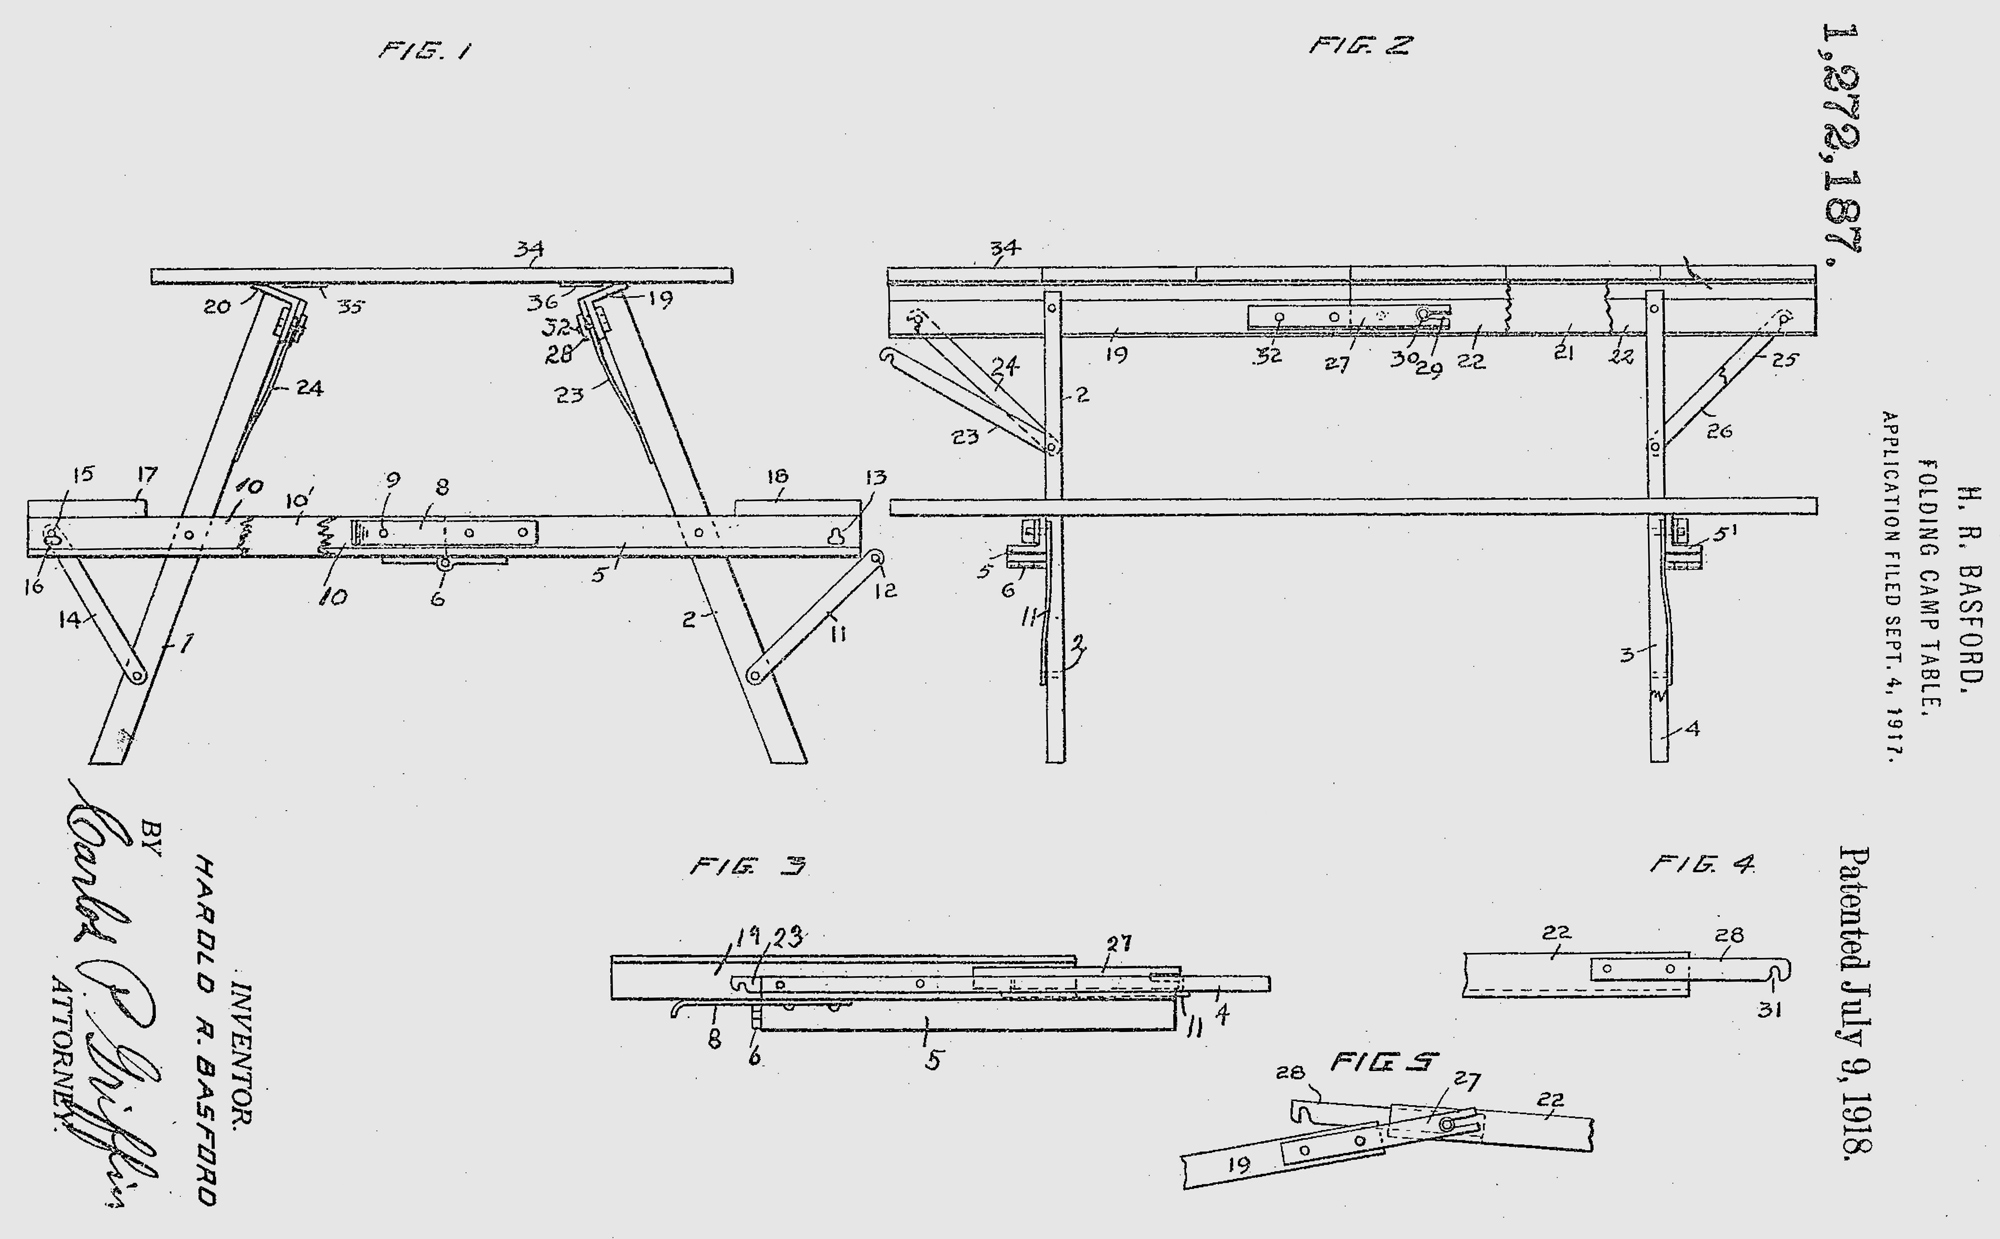 hight resolution of h r basford folding camp table u s patent 1918